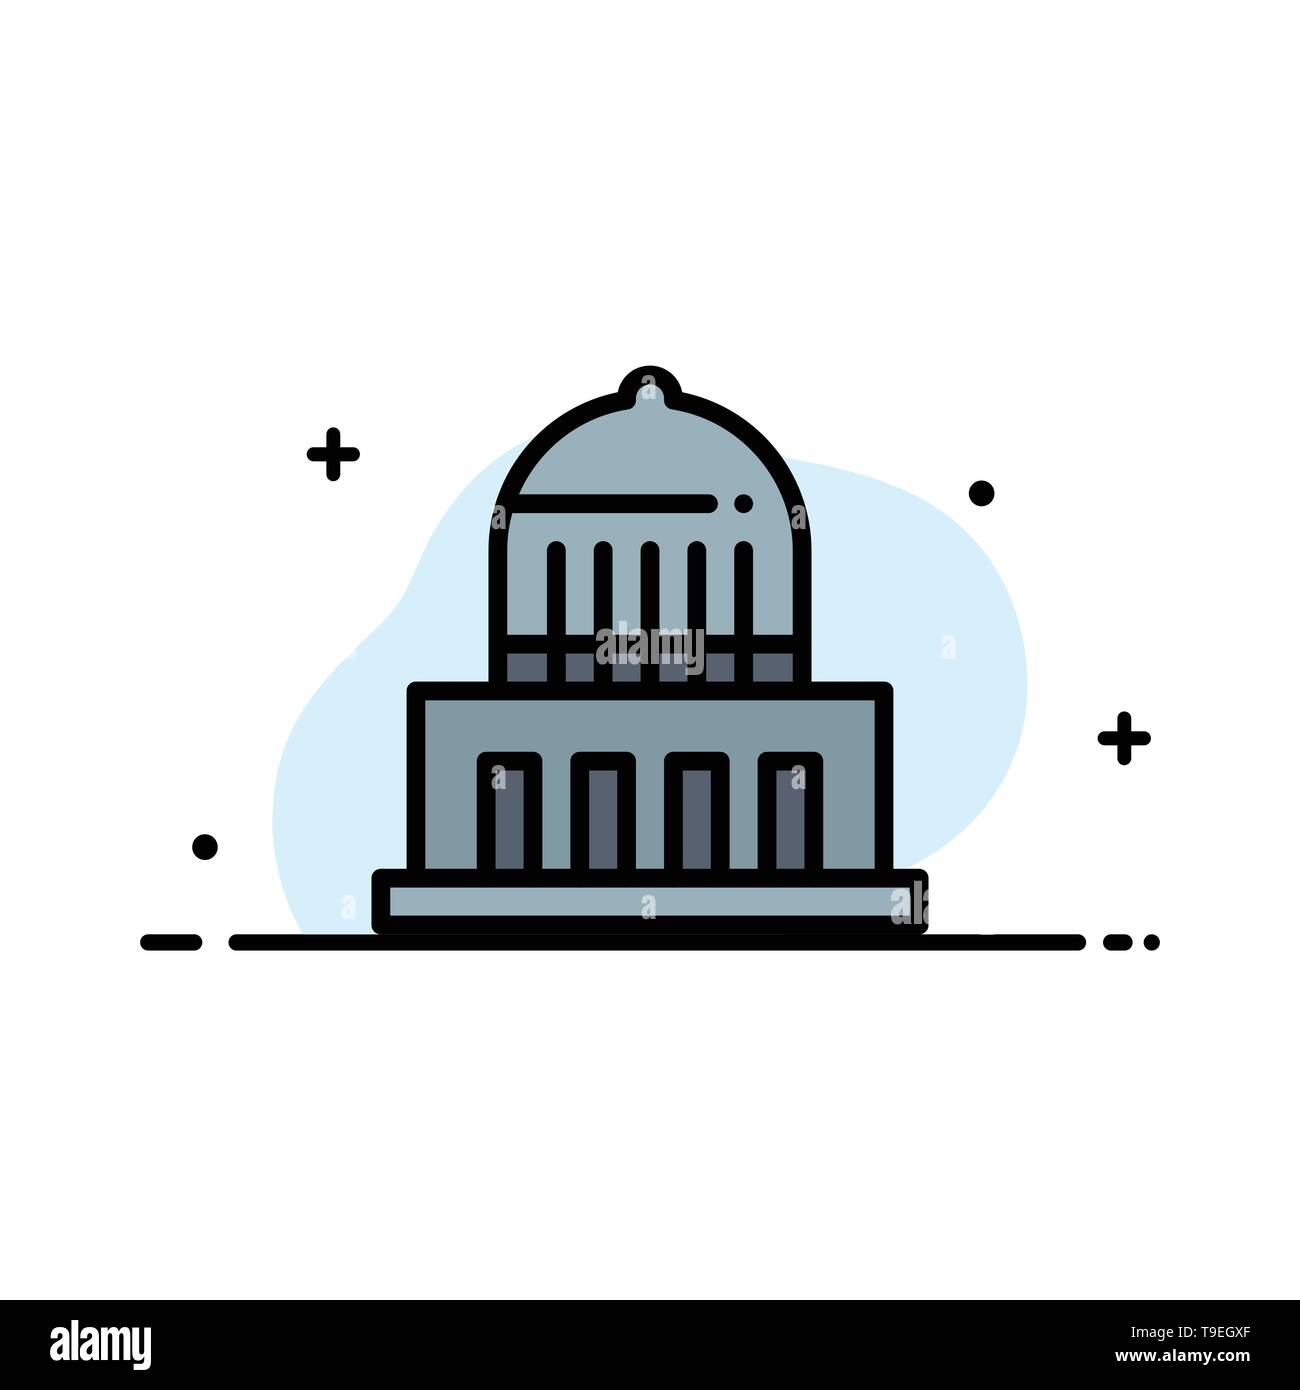 Building, City, Landmark, Usa  Business Flat Line Filled Icon Vector Banner Template - Stock Image